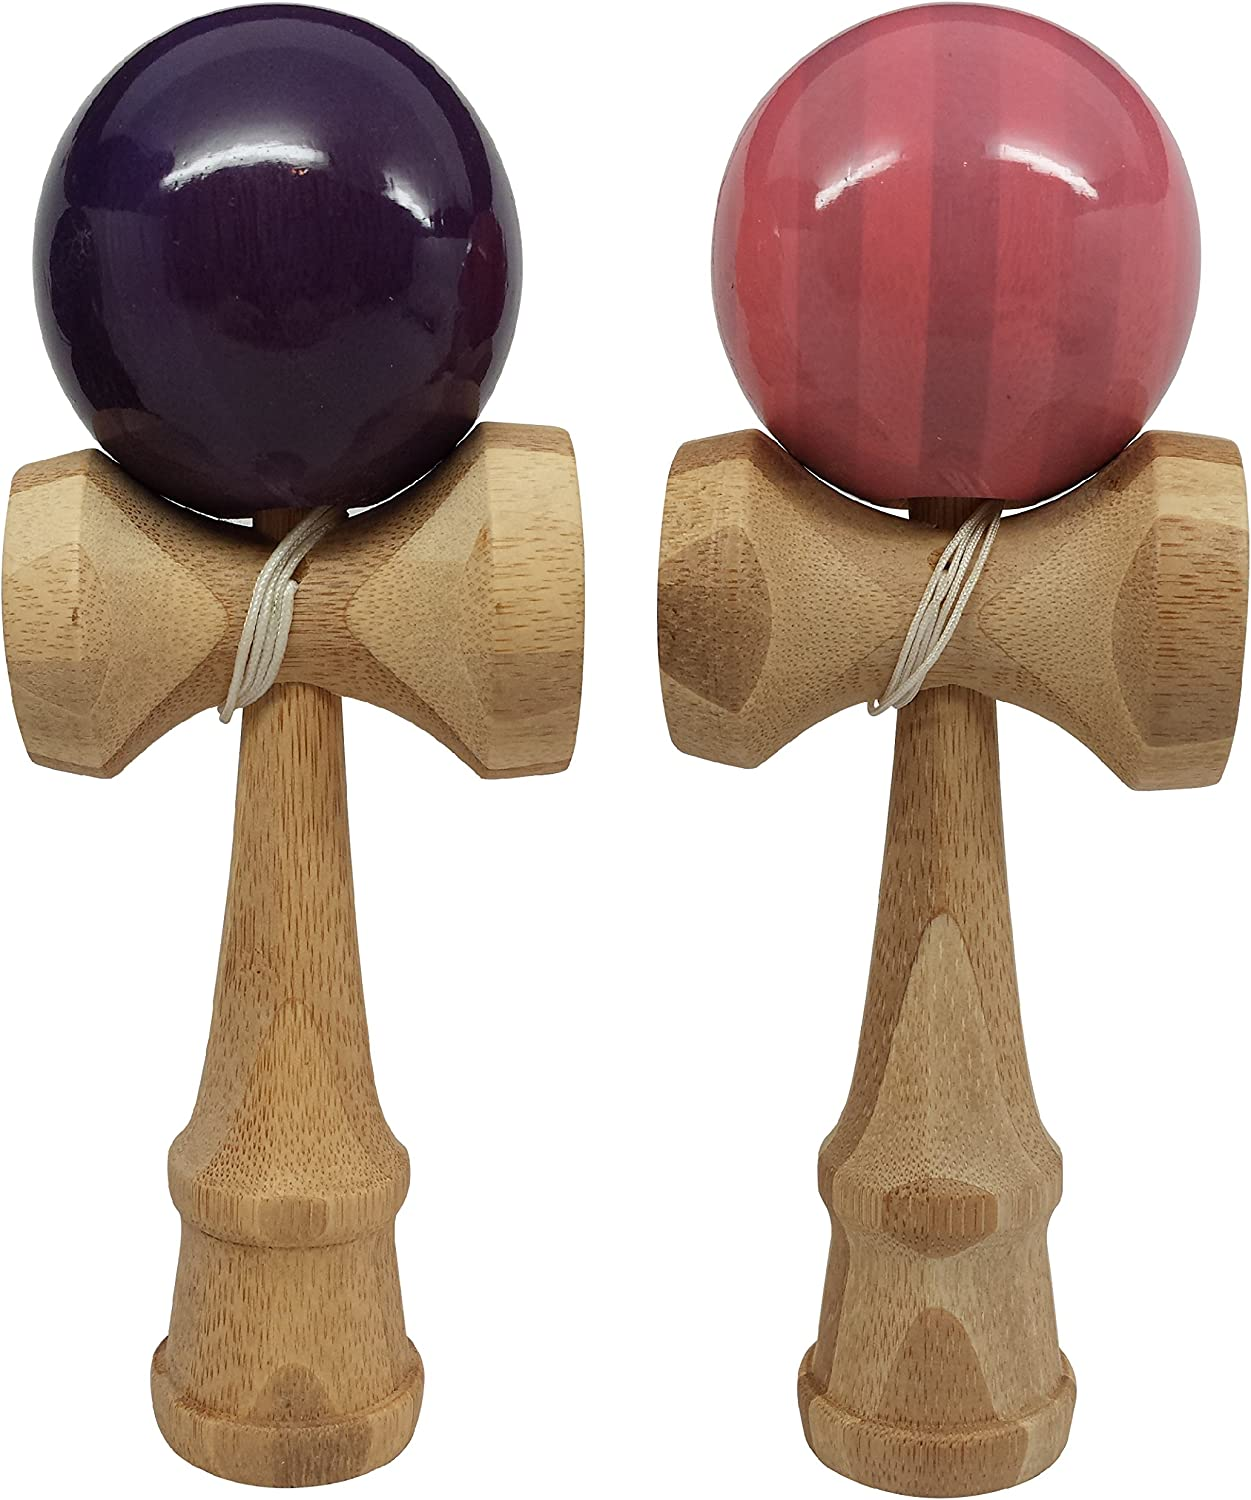 KENDAMA TOY CO. 2 Pack - The Best Kendama for All Kinds of Fun (Full Size) - 2 Pack- Awesome Colors: Pink/Bamboo Purple/Bamboo Set - Solid Bamboo Wood -Create Better Hand and Eye Coordination